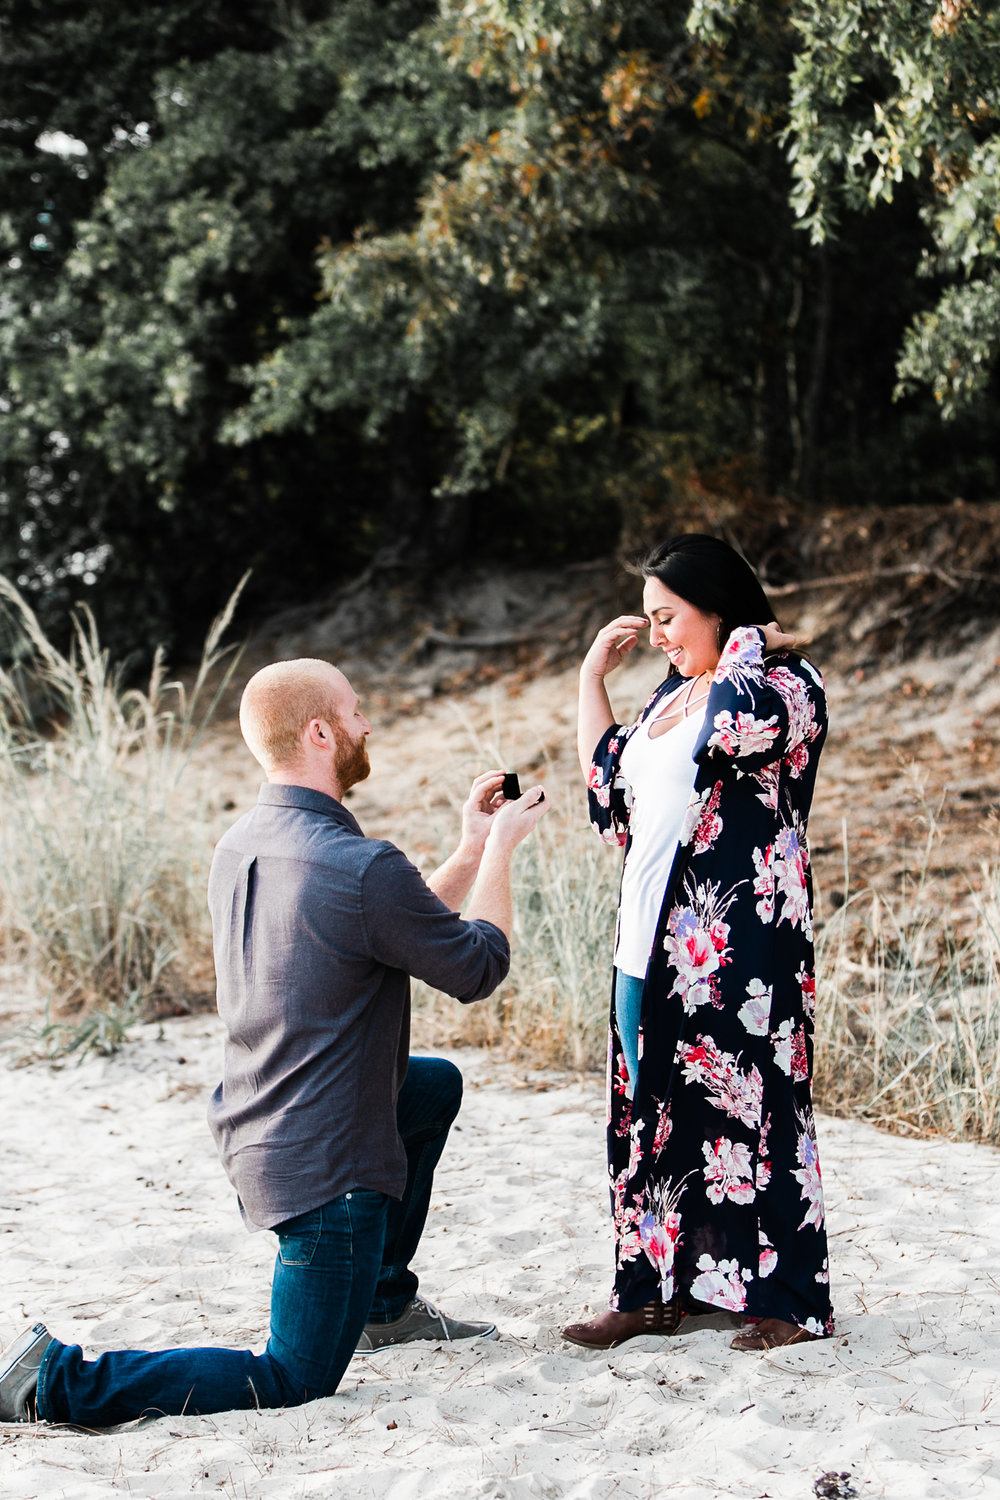 Samantha&Cody_Proposal-36.jpg